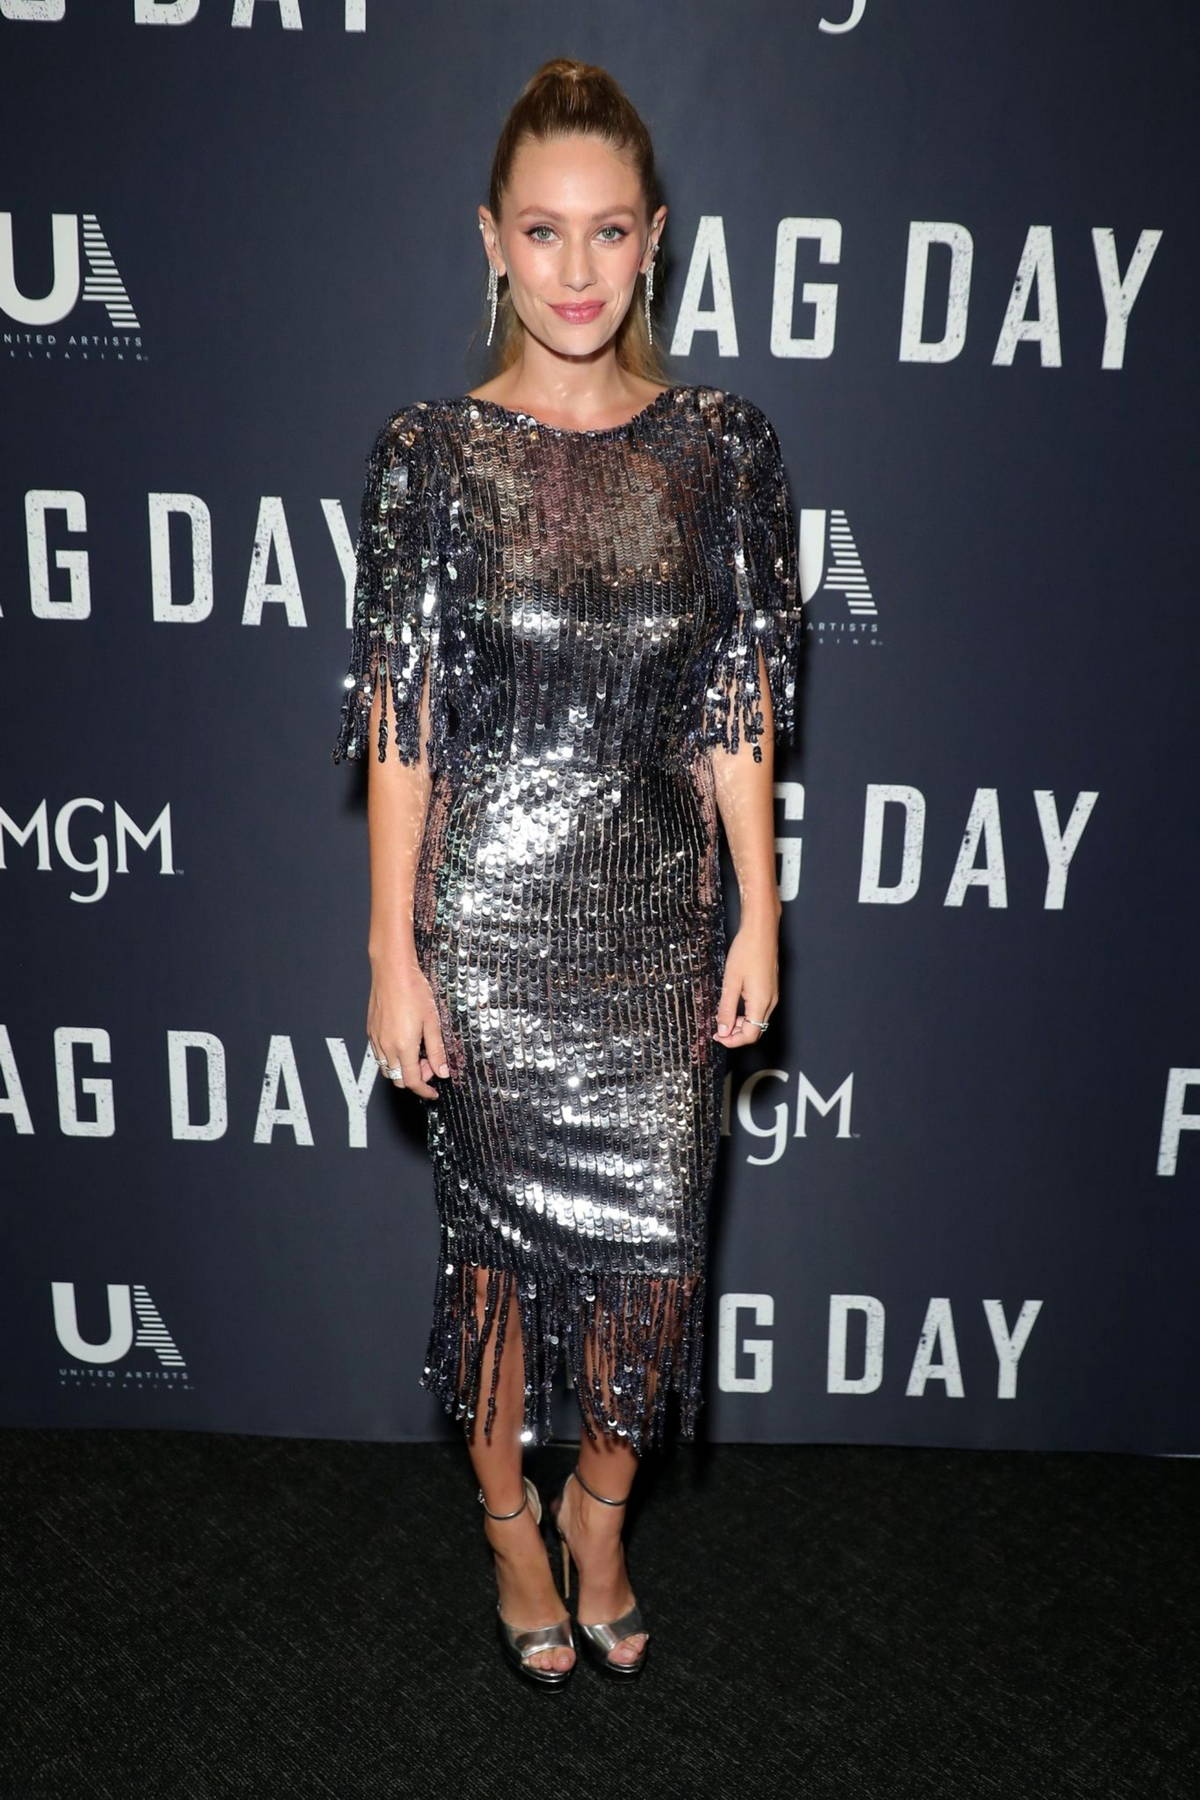 Dylan Penn attends a special screening of Sean Penn's 'Flag Day' at The Directors Guild of America in Los Angeles